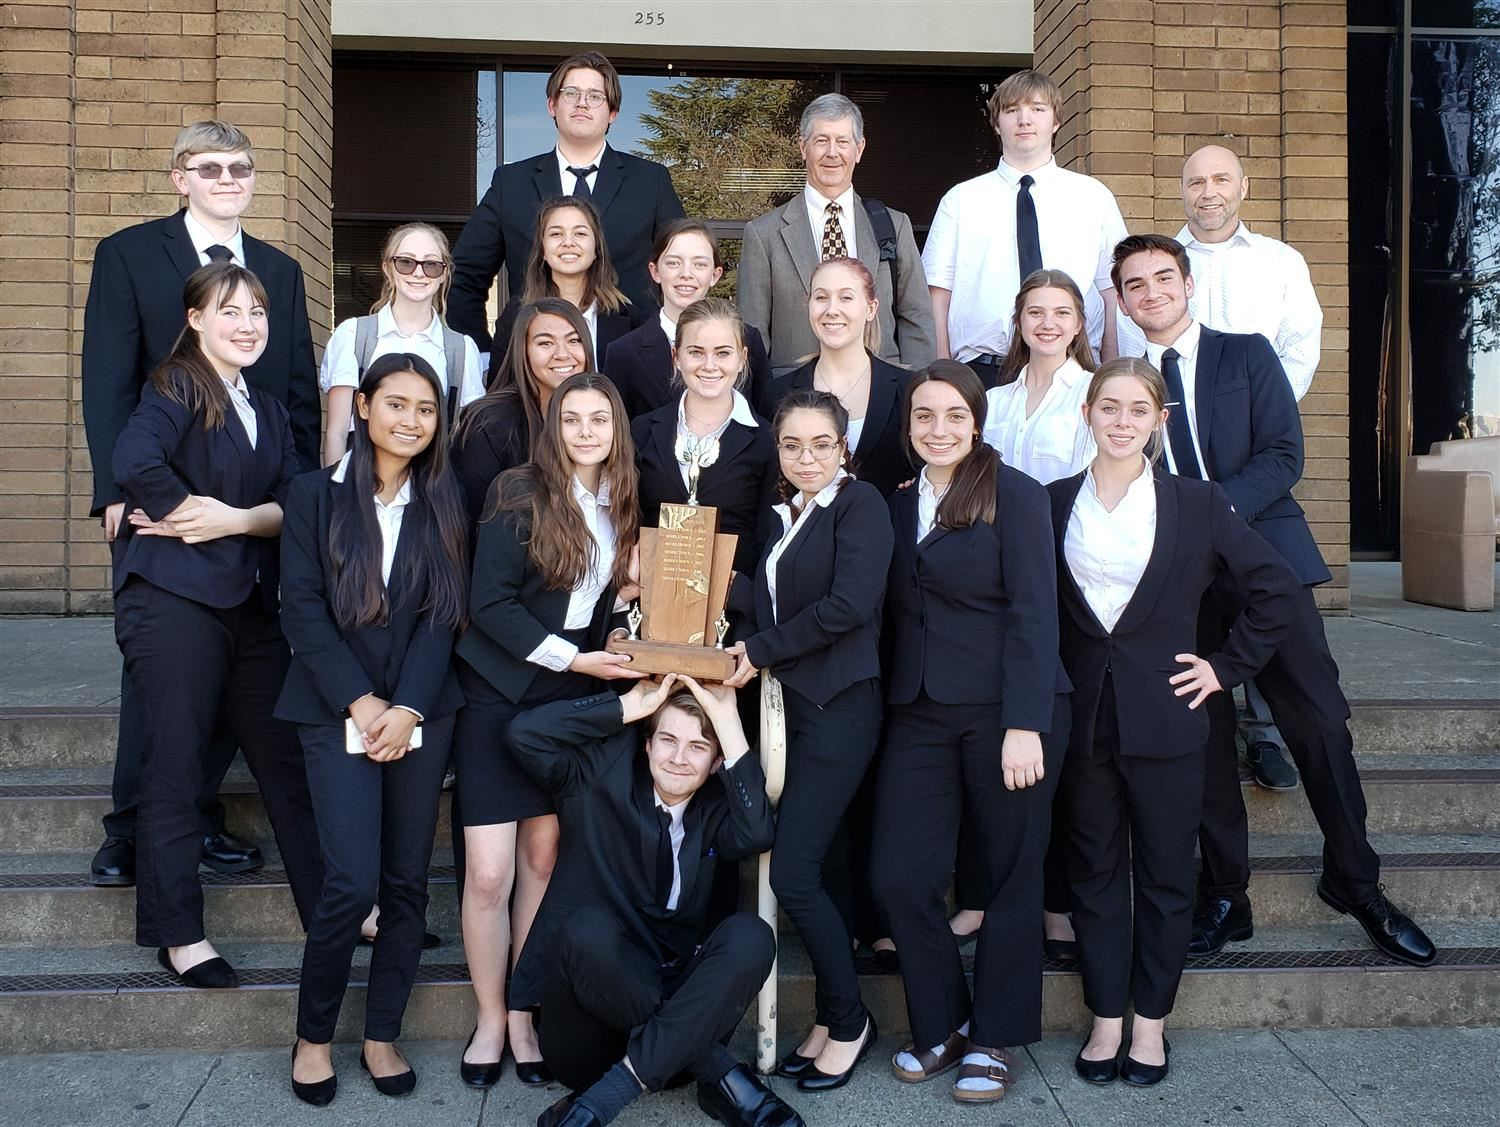 Middletown High School Mock Trial teams poses with trophy in front of the Lake County Courthouse.